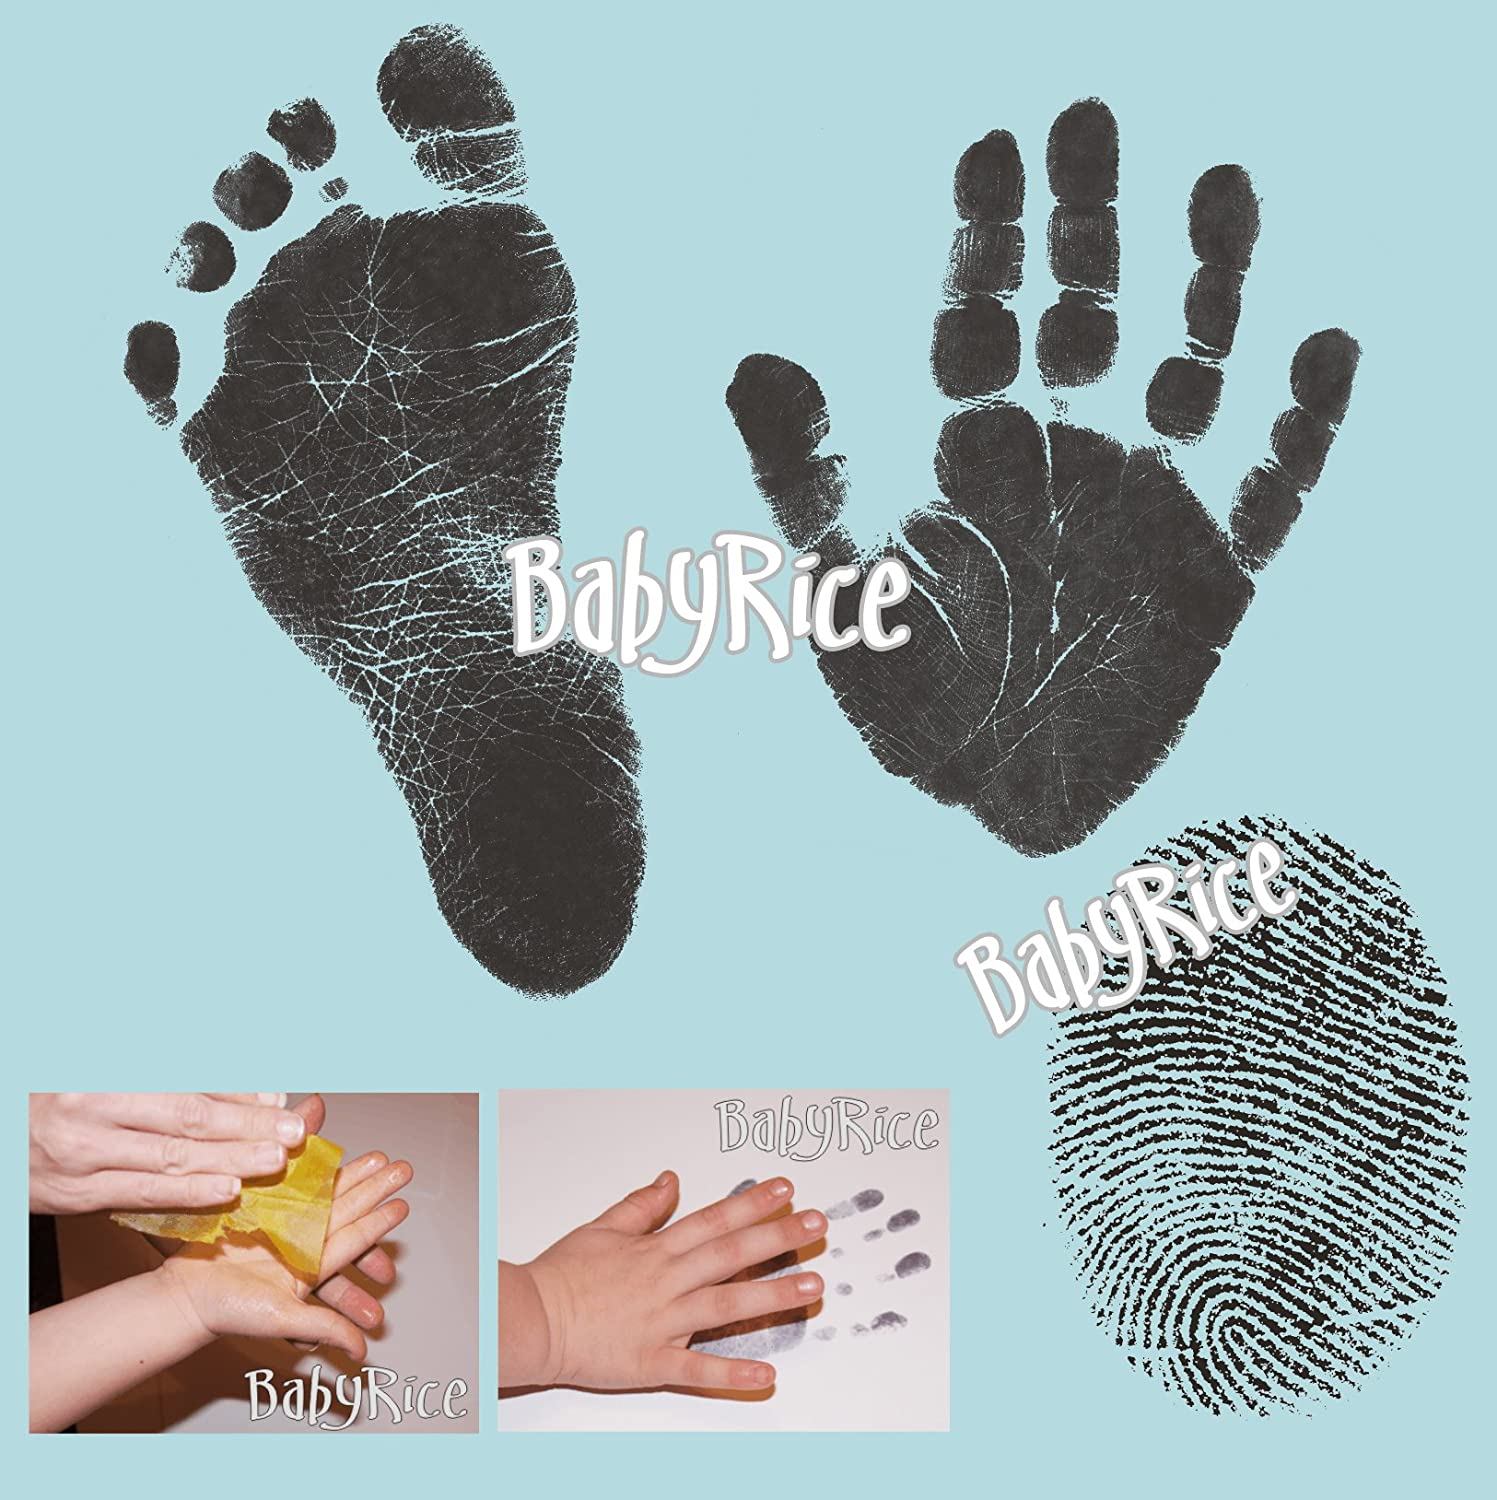 Choose pack size 1 WIPE // 2xA4 CARDS BabyRice Value Baby Handprints and Footprints Kit Black Inkless Wipes No Messy Ink